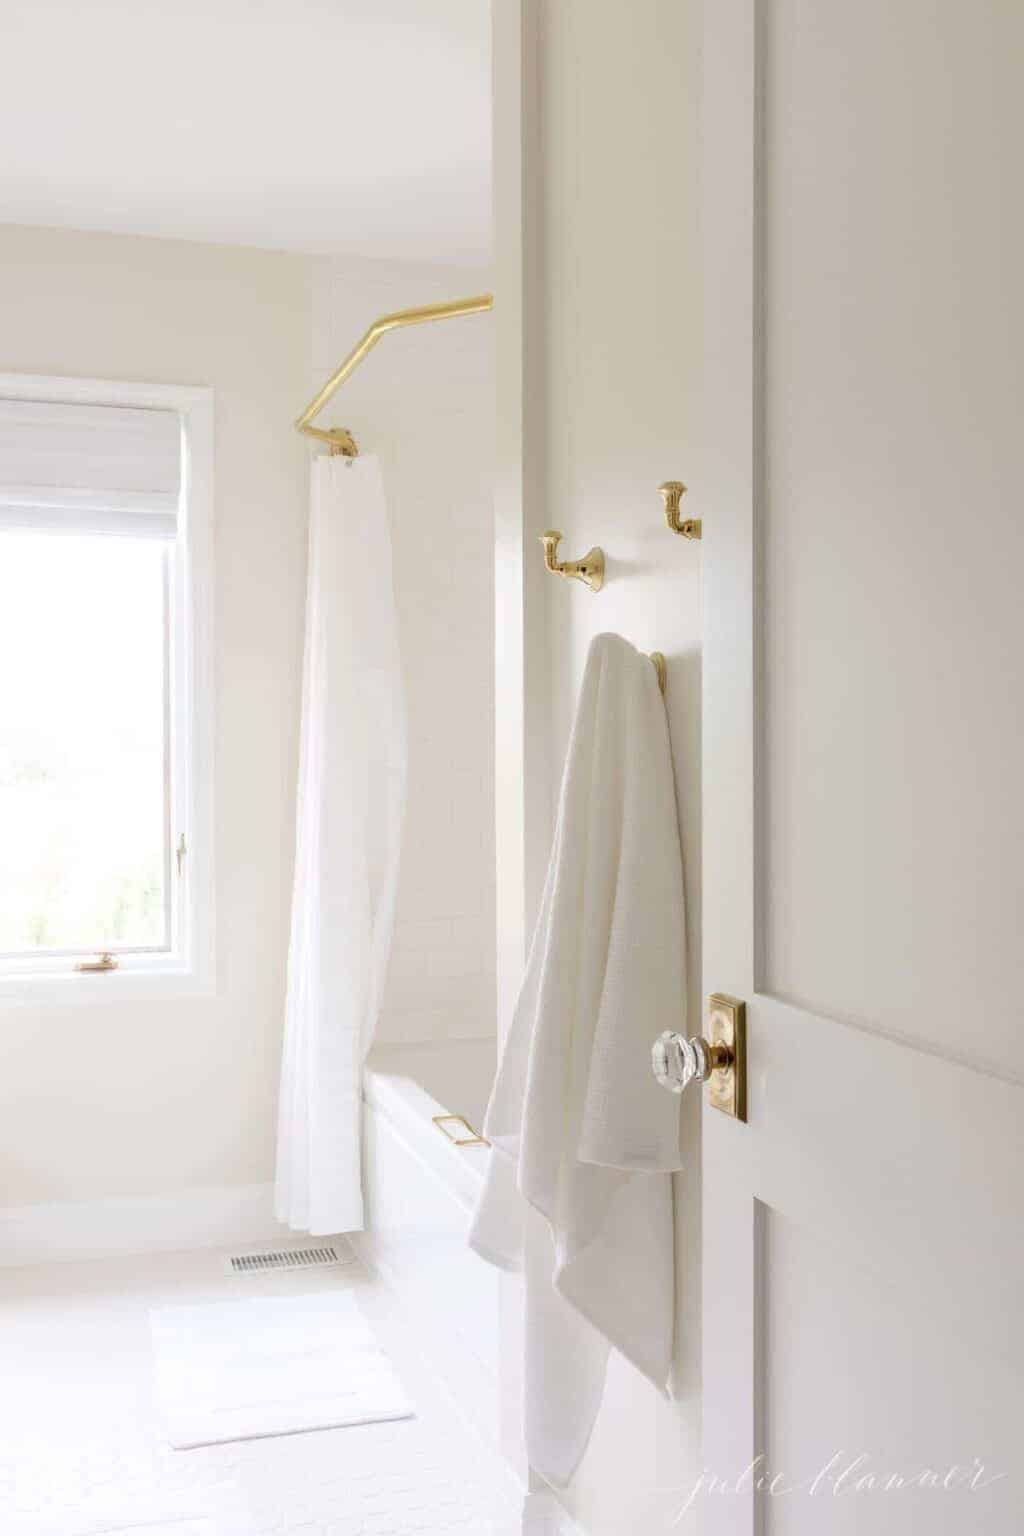 A white Shaker style door with a brass doorknob, opening into a bathroom.